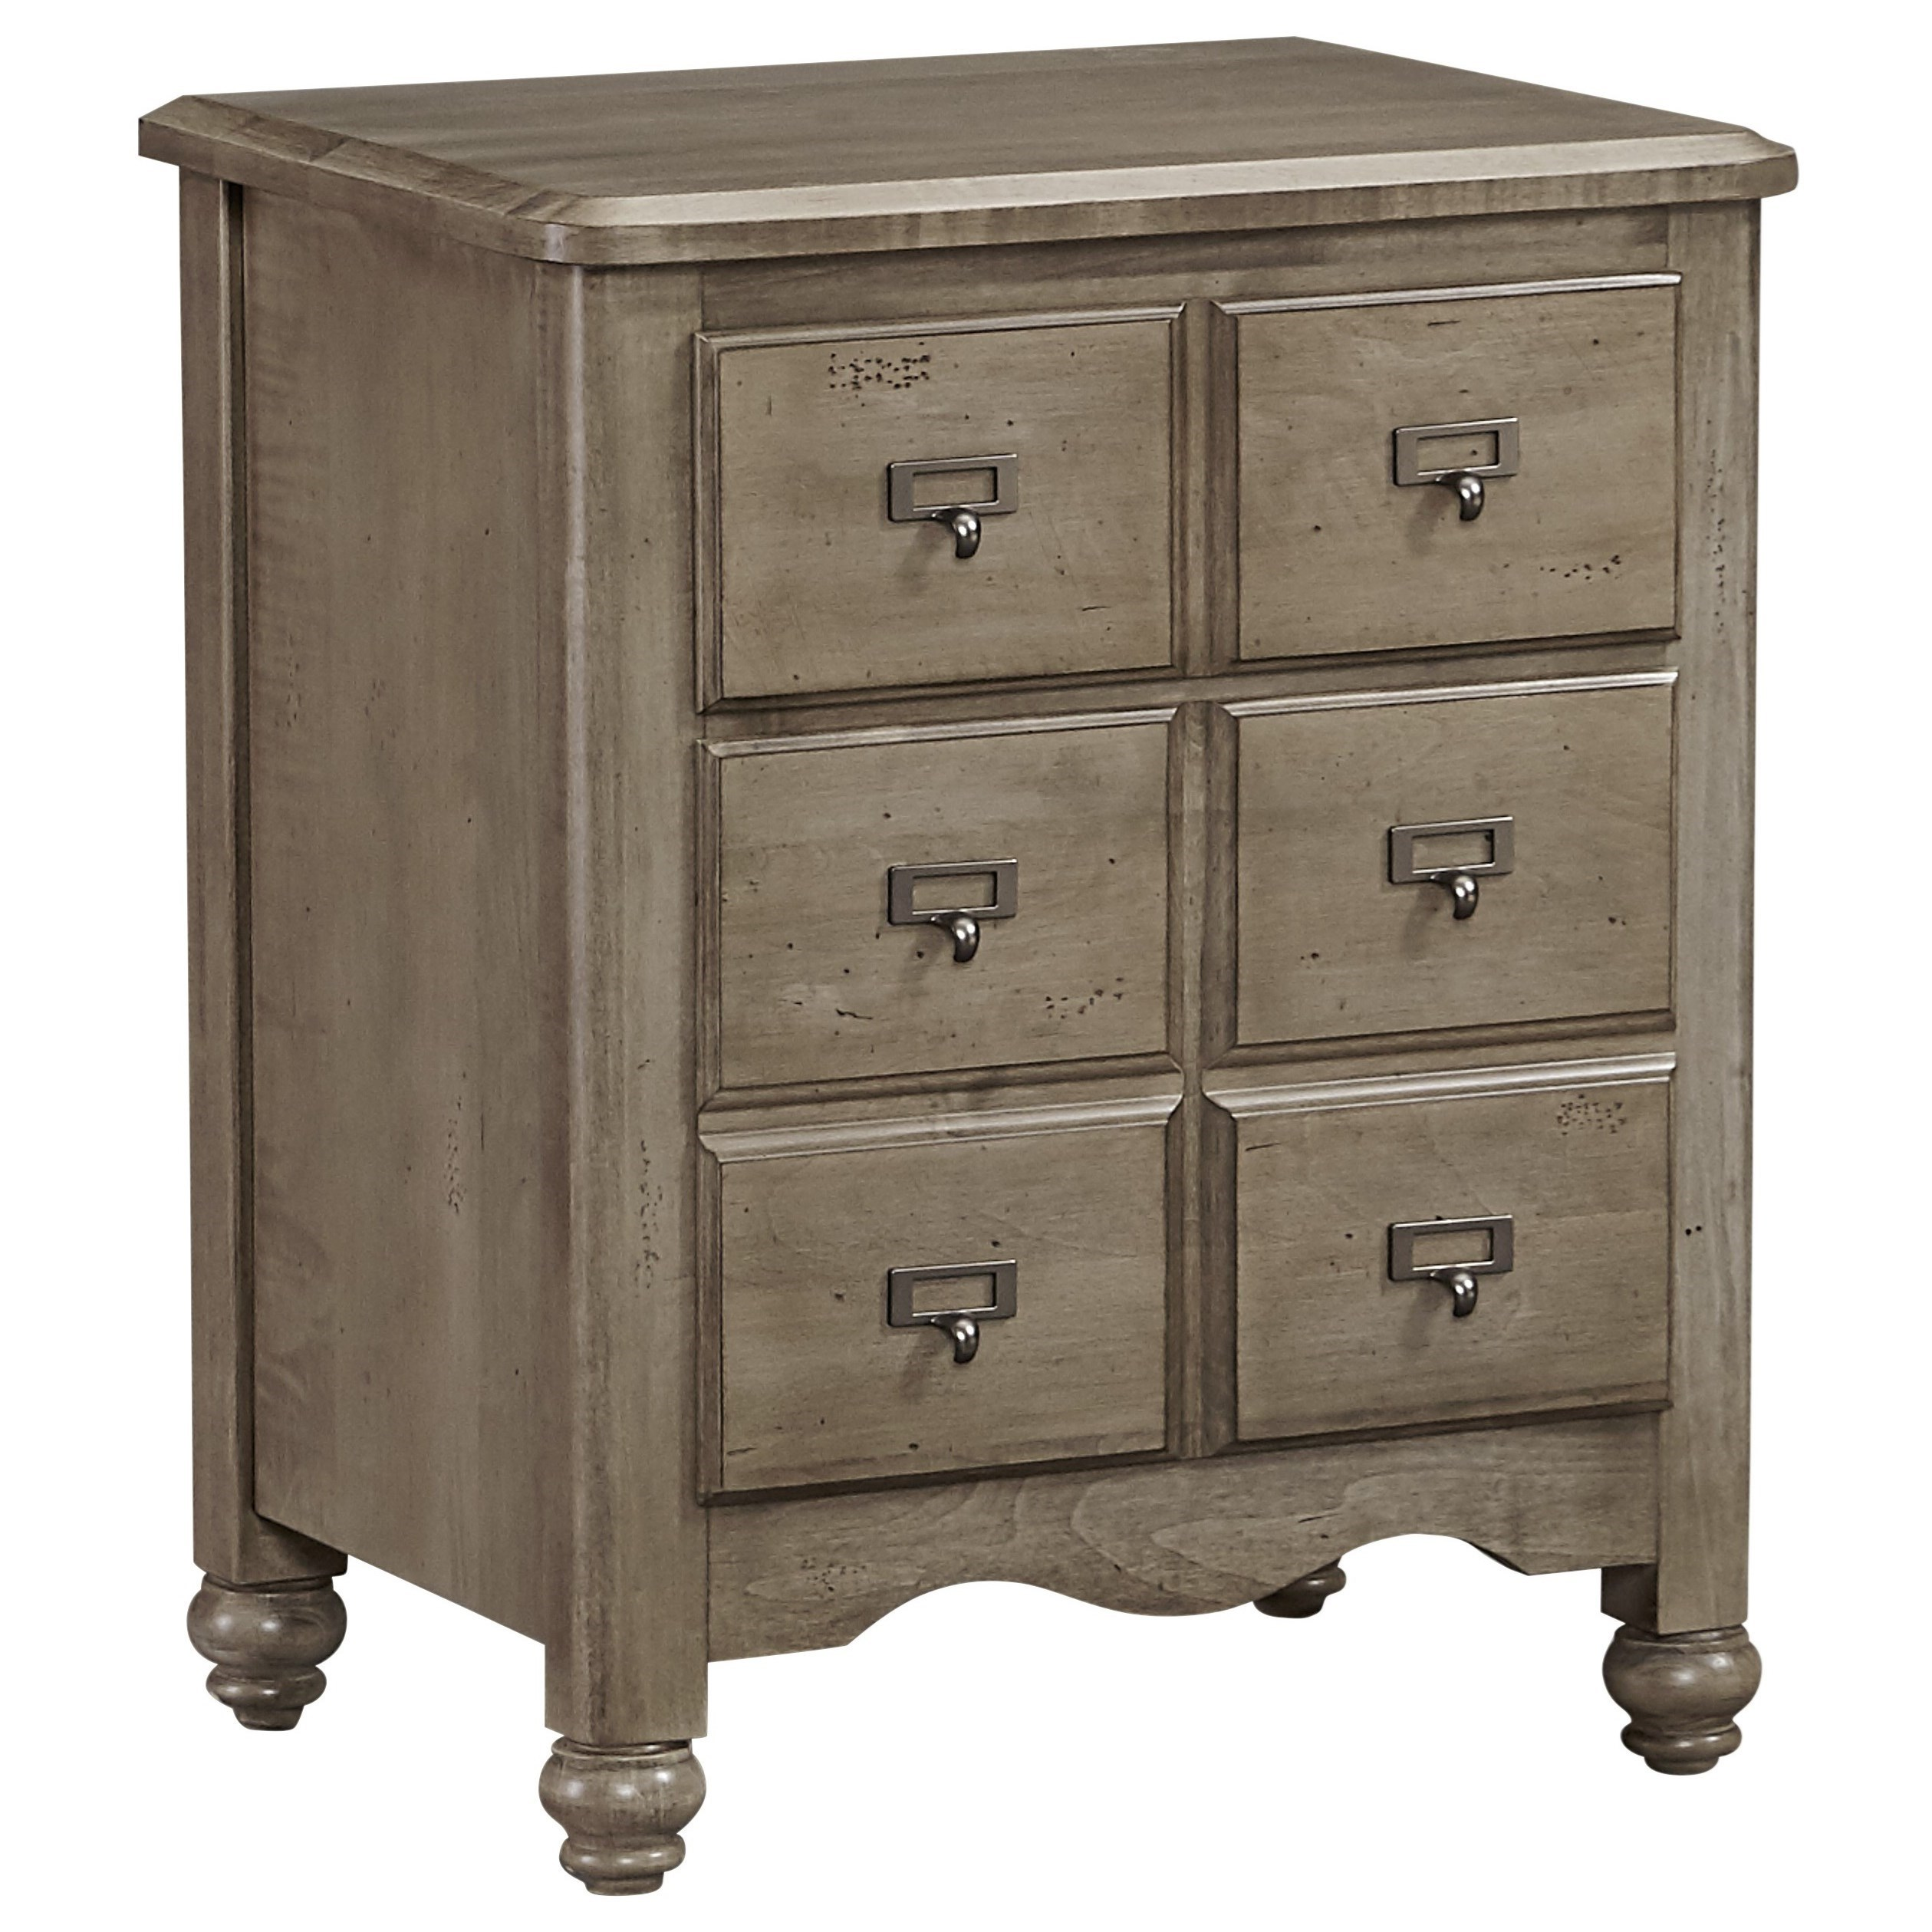 Vaughan Bassett American Maple Apothecary Night Stand - 2 Drawers - Item Number: 401-228